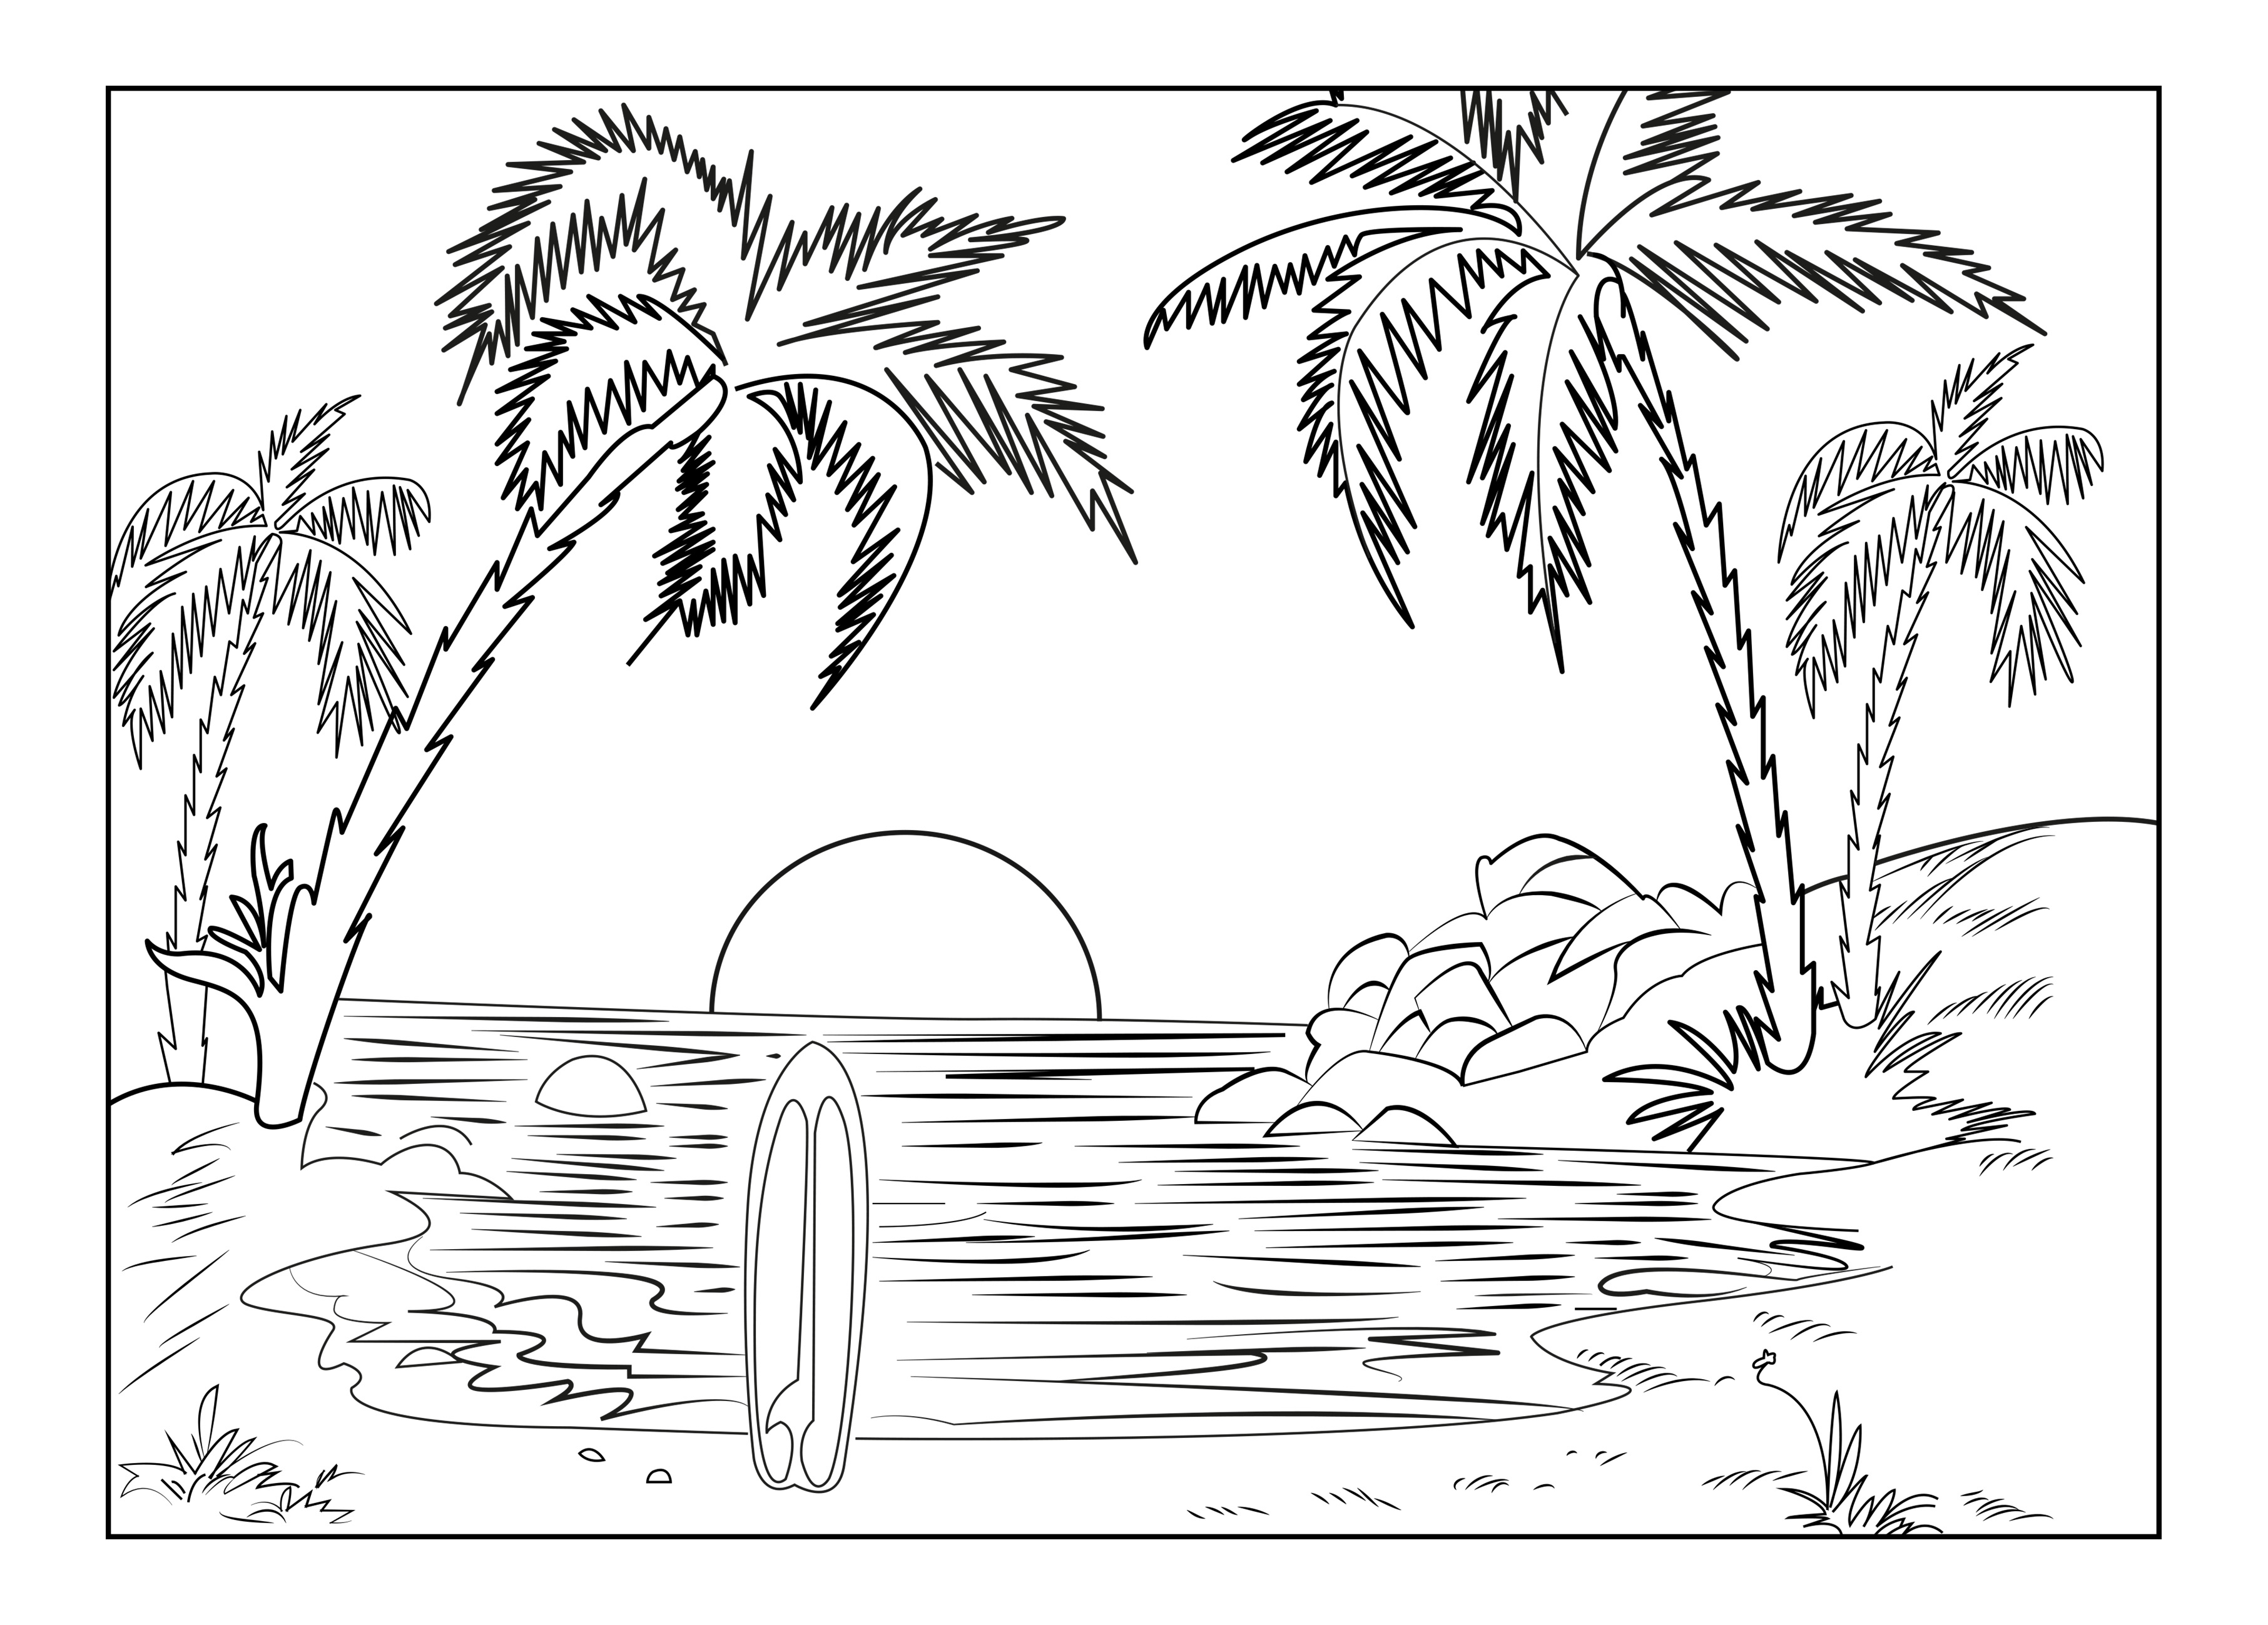 how to draw a beach how to draw a beach in 6 steps with picsarts step by step draw a beach how to